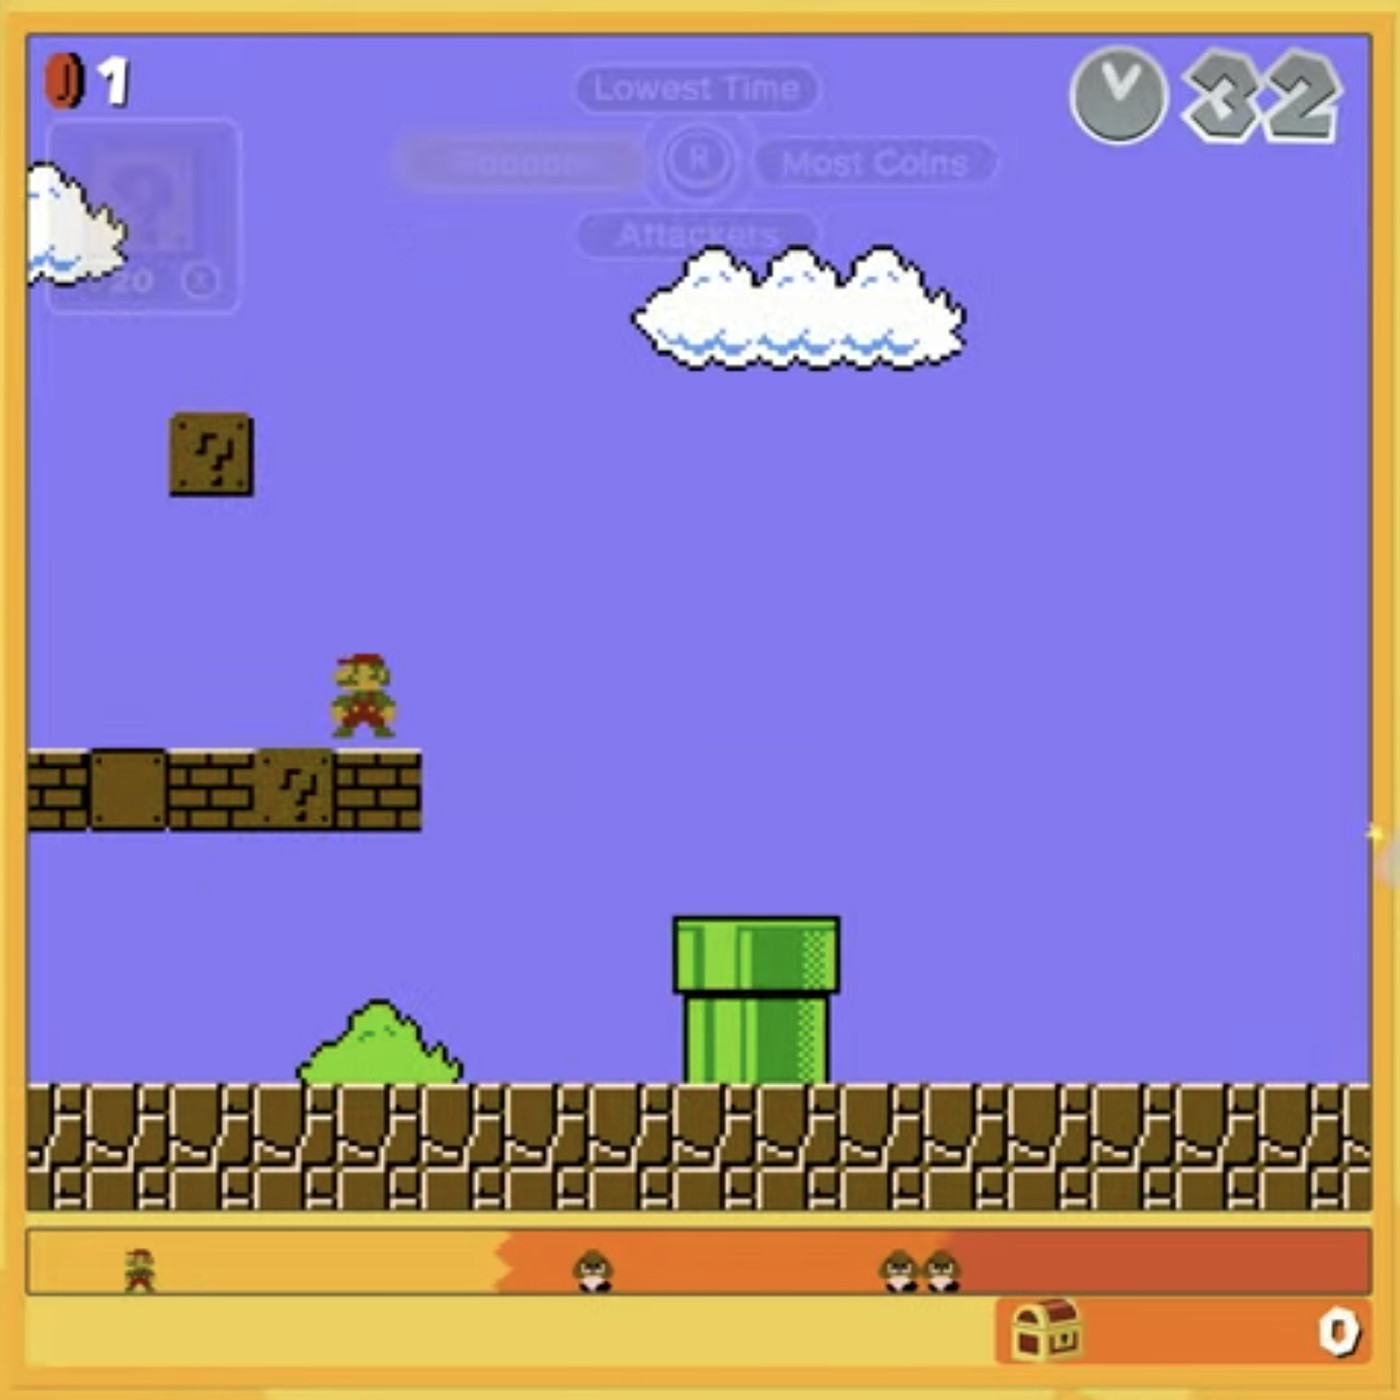 Super Mario Bros 35 Turns Classic Mario Gameplay Into A 35 Person Battle Royale The Verge